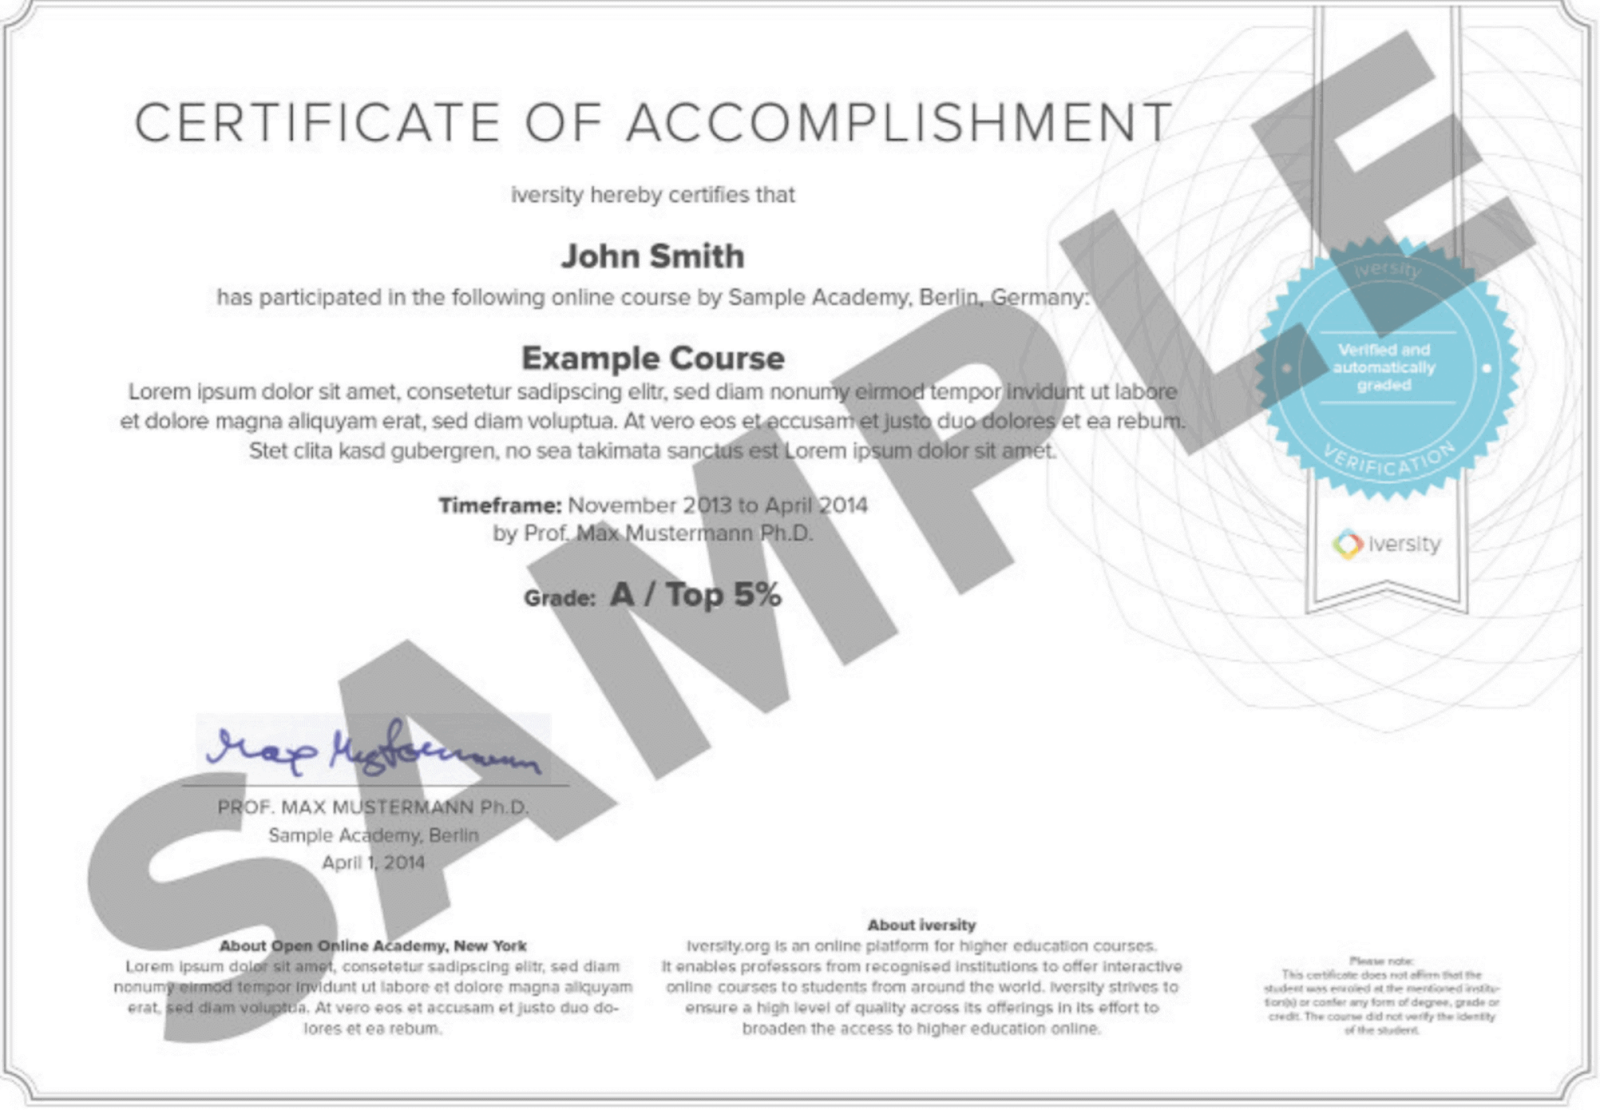 How can I get a certificate on Iversity?